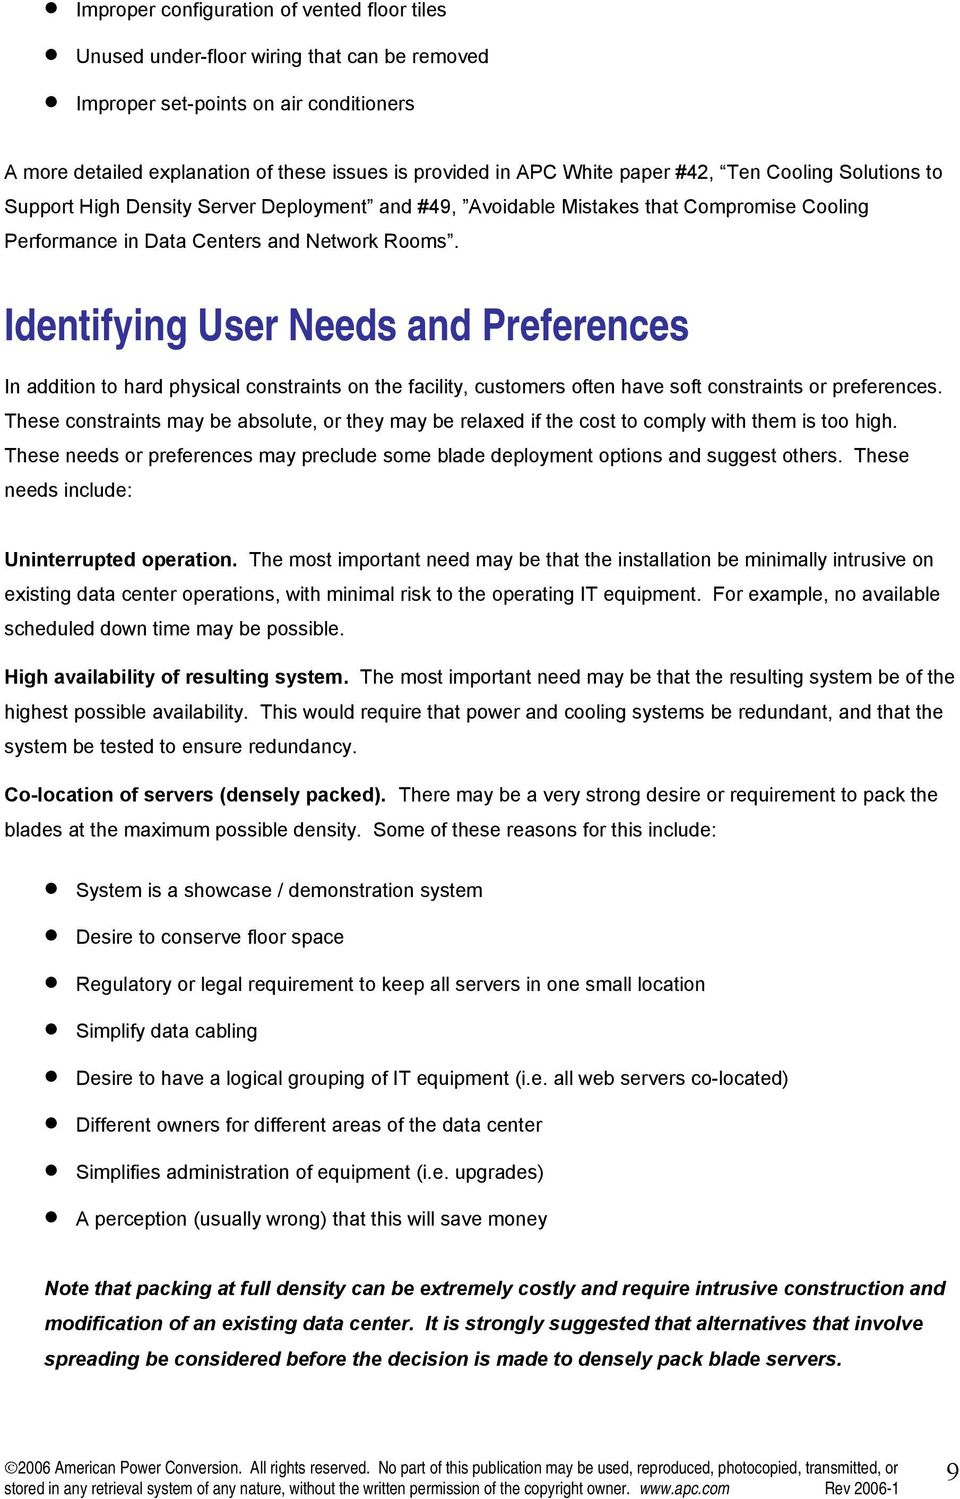 Identifying User Needs and Preferences In addition to hard physical constraints on the facility, customers often have soft constraints or preferences.